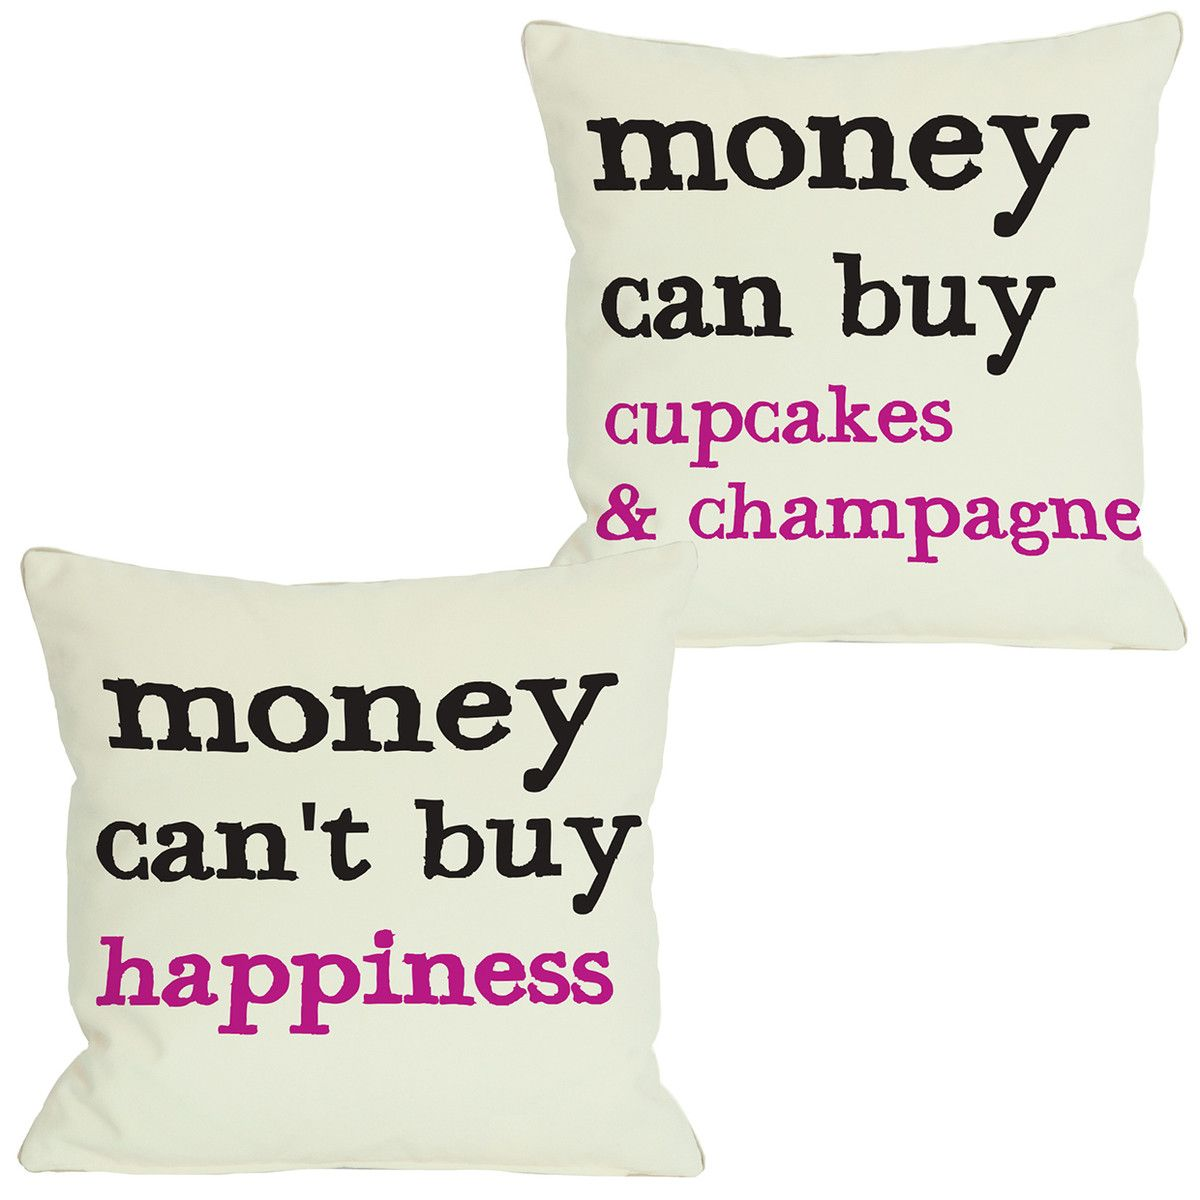 Money Throw Pillows #money #pillows #cupcakes #livingroom #bedroom #bedding #home #decor